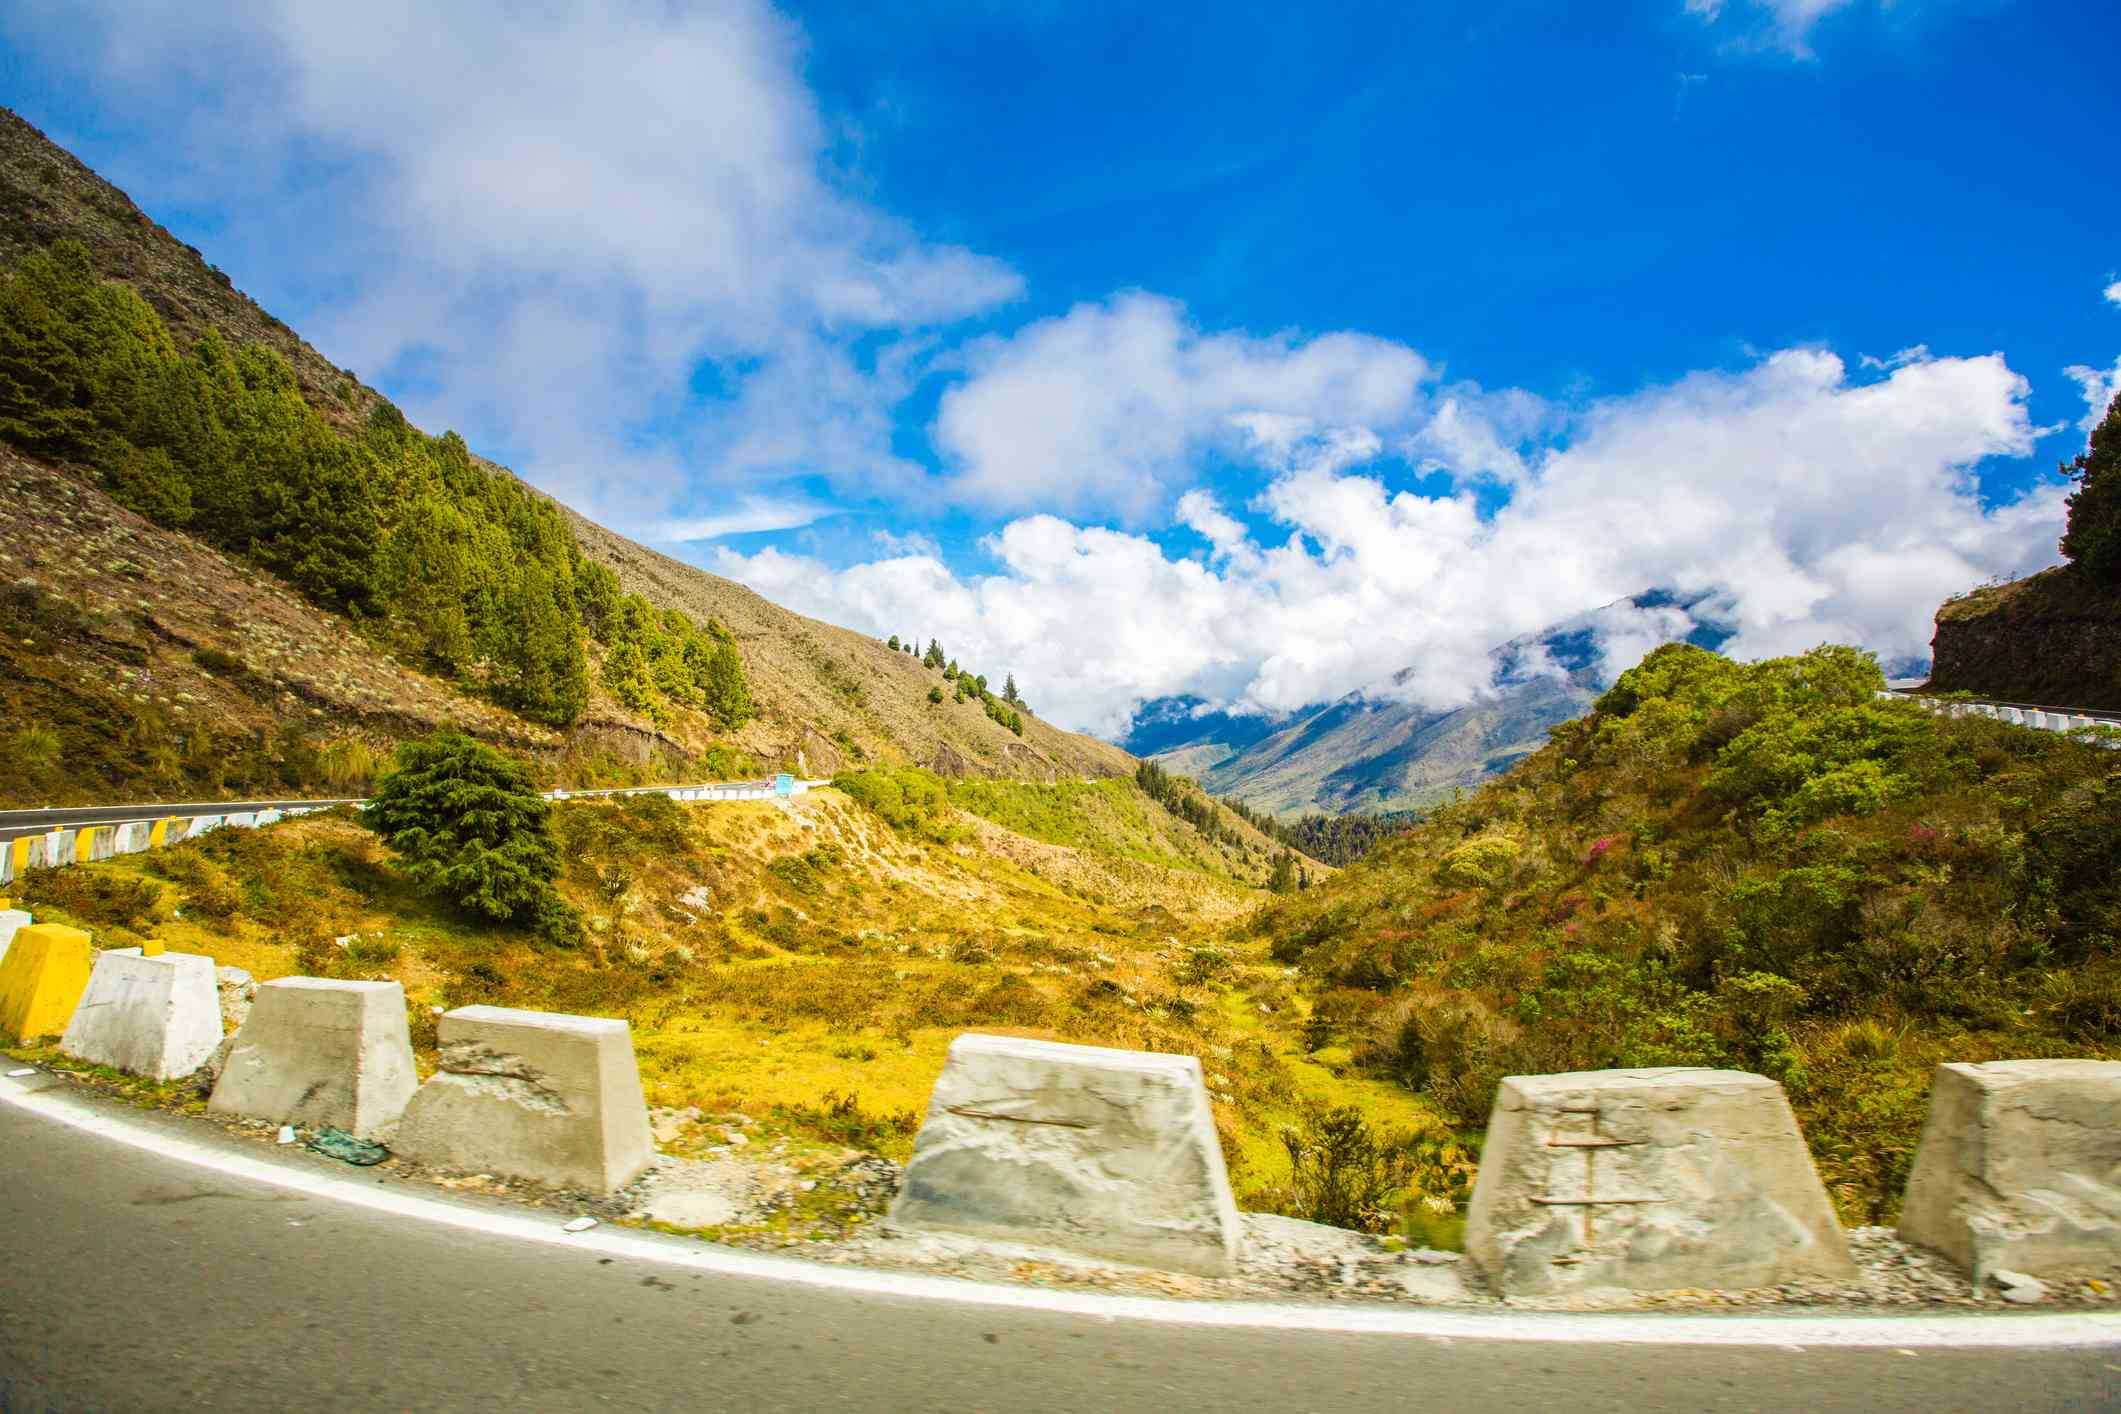 road in the Andes mountains in the state of Merida